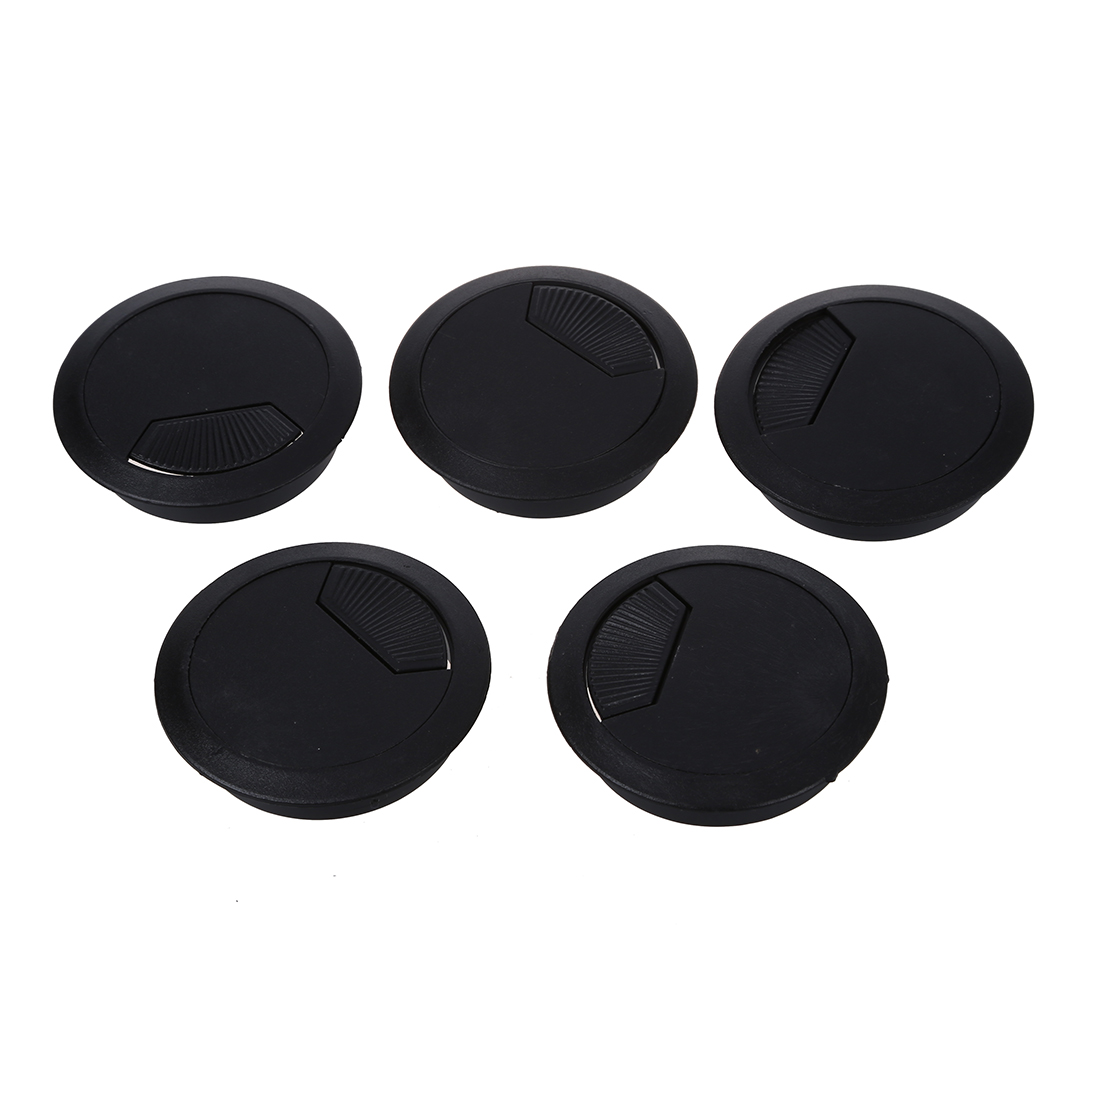 Hot Sale 5 Pcs Home Office Desk Table Computer 60mm Cable Cord Grommet Hole Black цена и фото